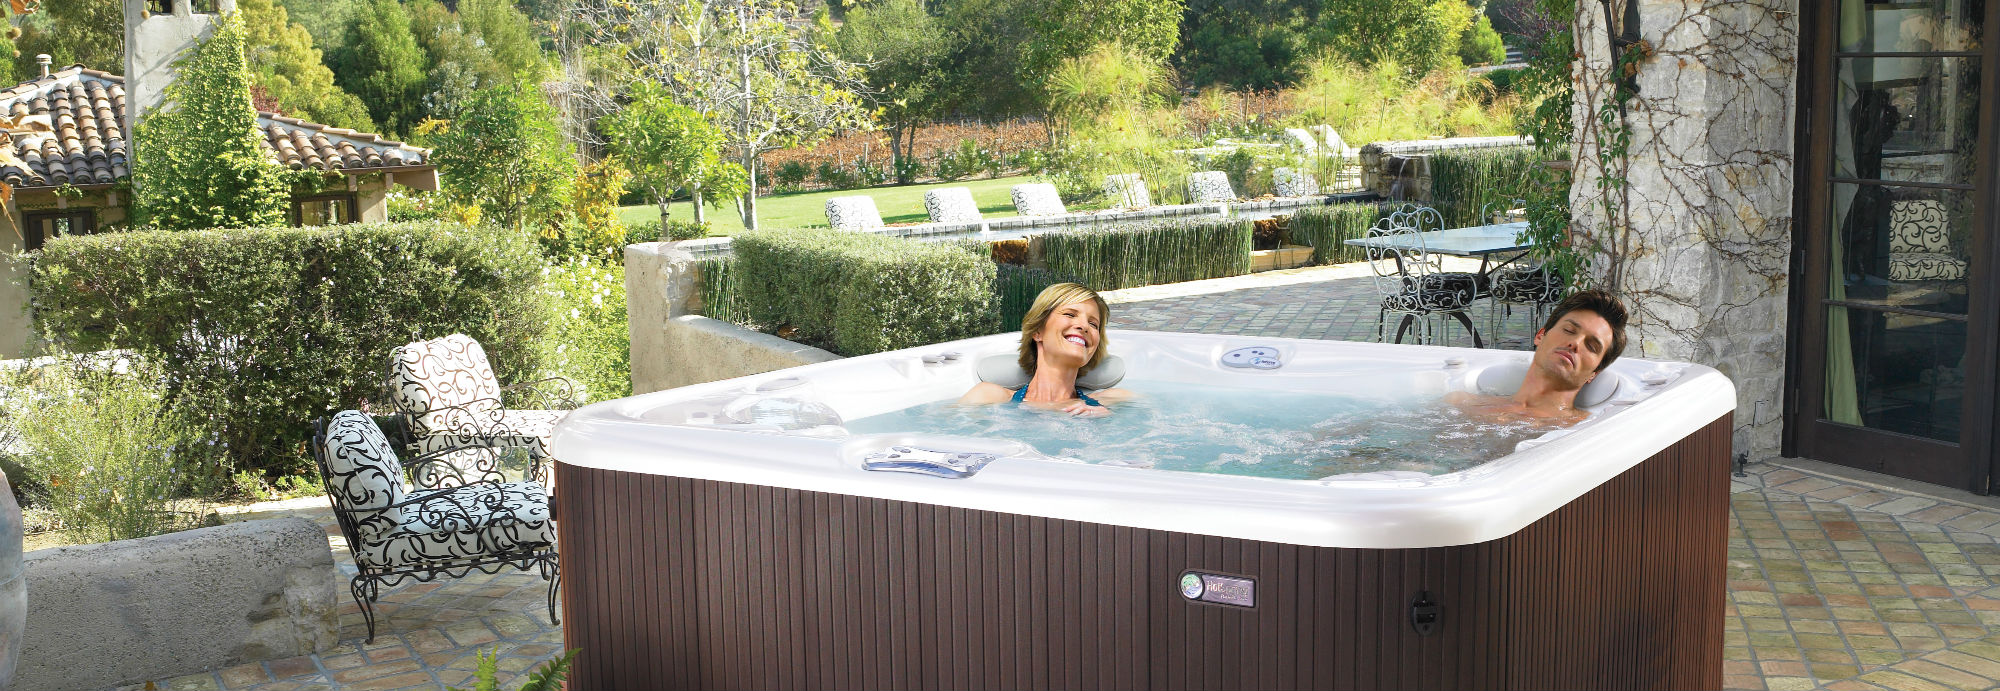 How Hot Water Therapy Can Make You Happier and Healthier – Ballwin Hot Tub Sale